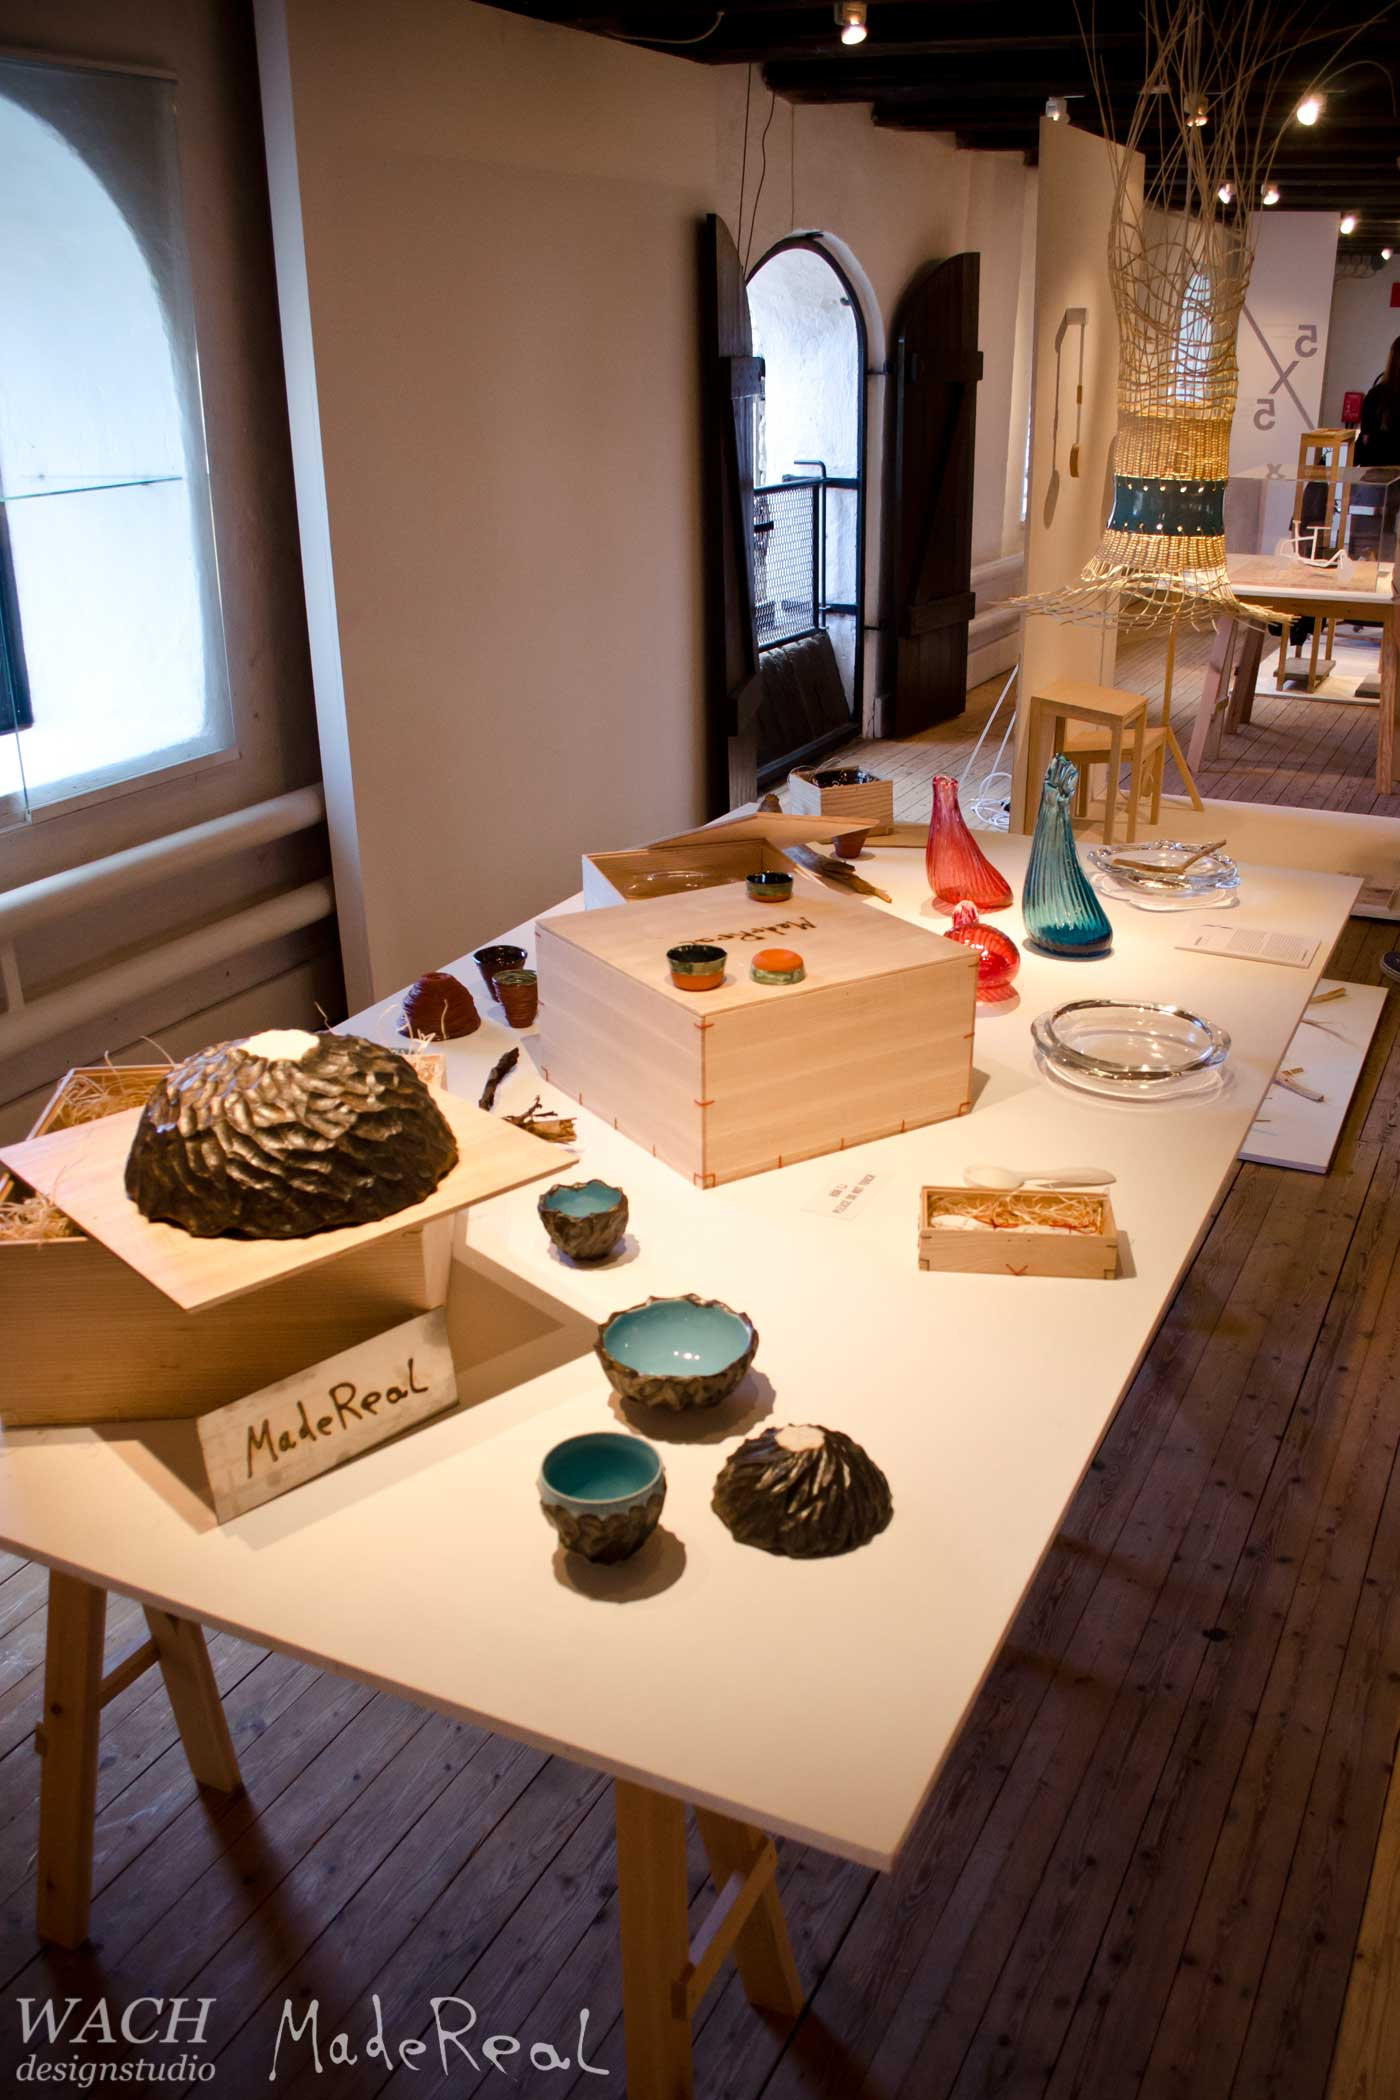 Exhibition of MadeReal items at the Form/Design Center in Malmö Sweden